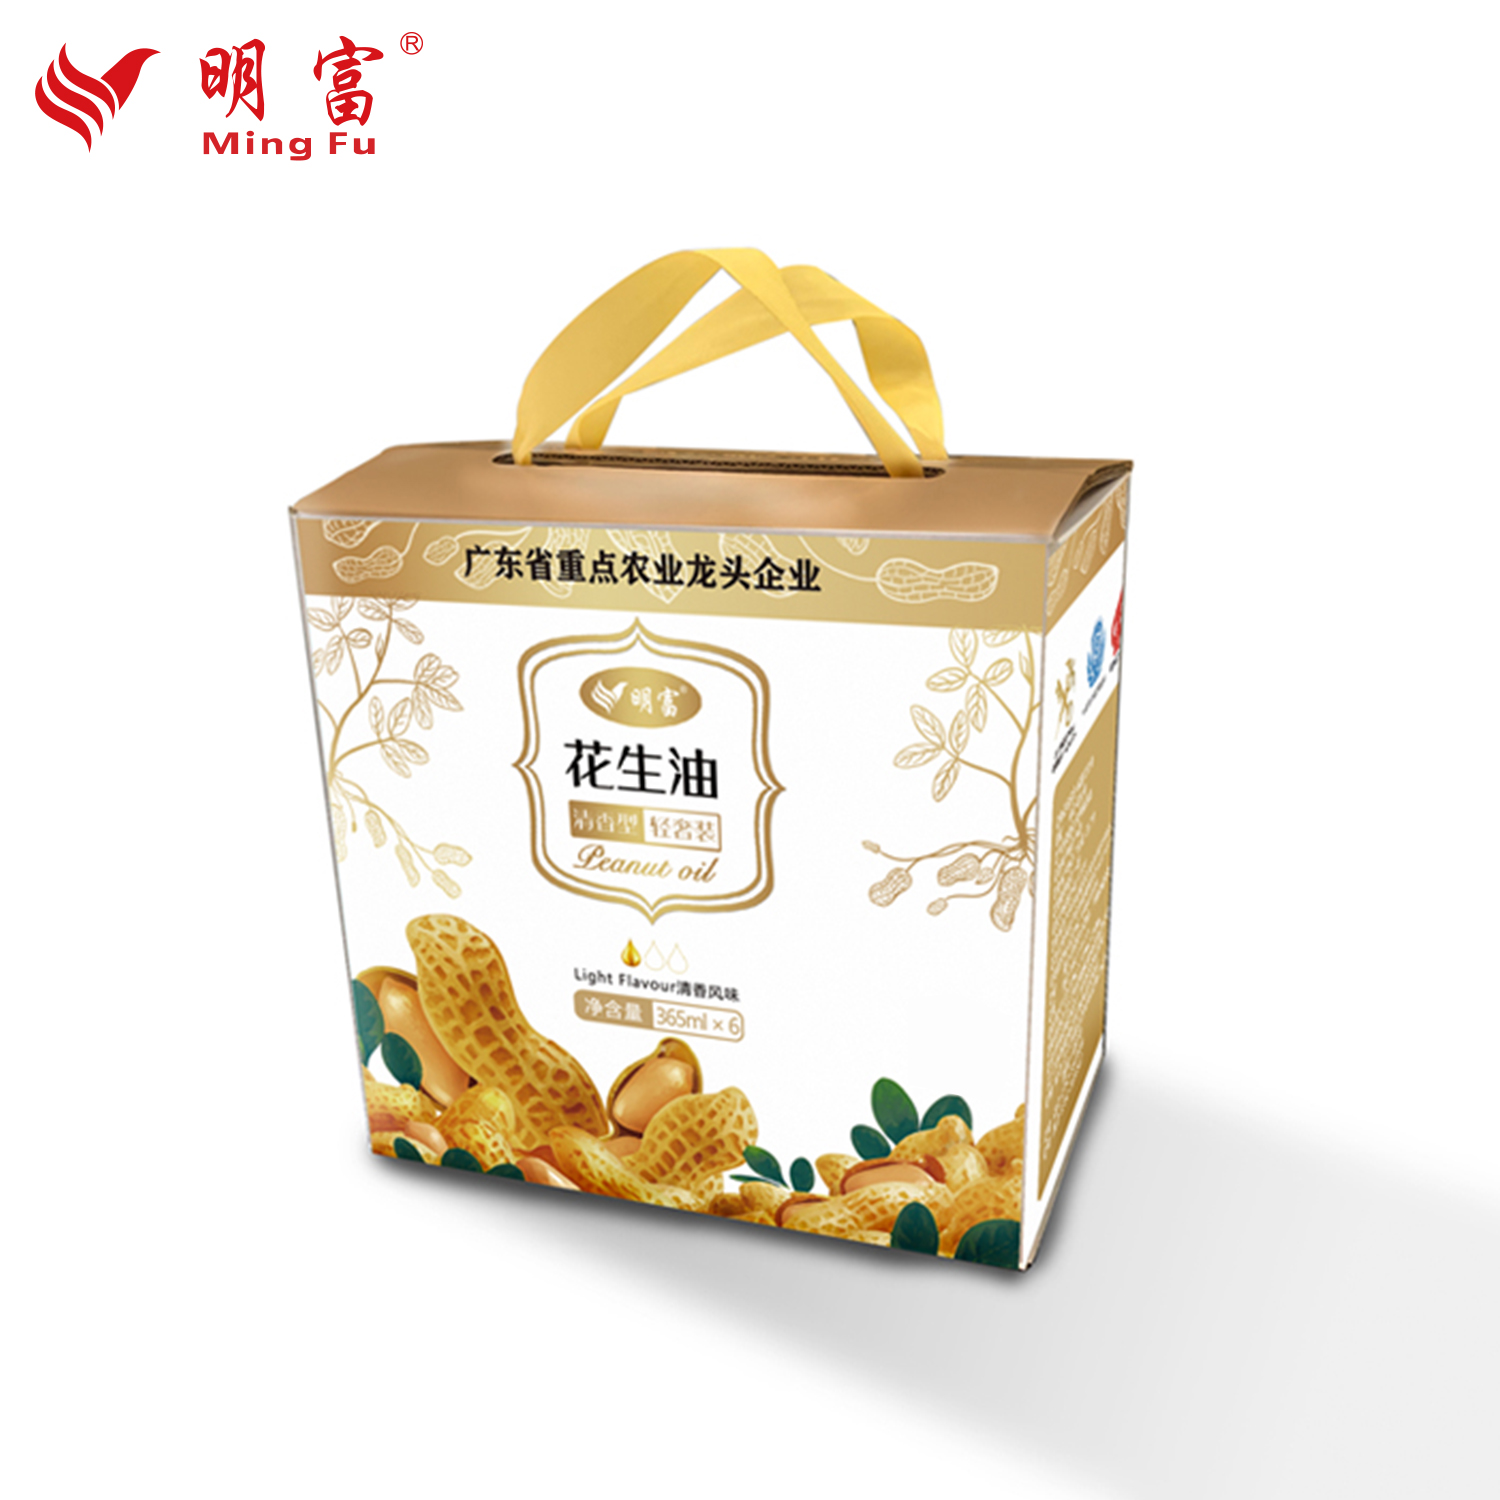 Mingfu Luzhou flavor pure peanut oil 365ml * 6 bottled household cooking oil group purchase gift box